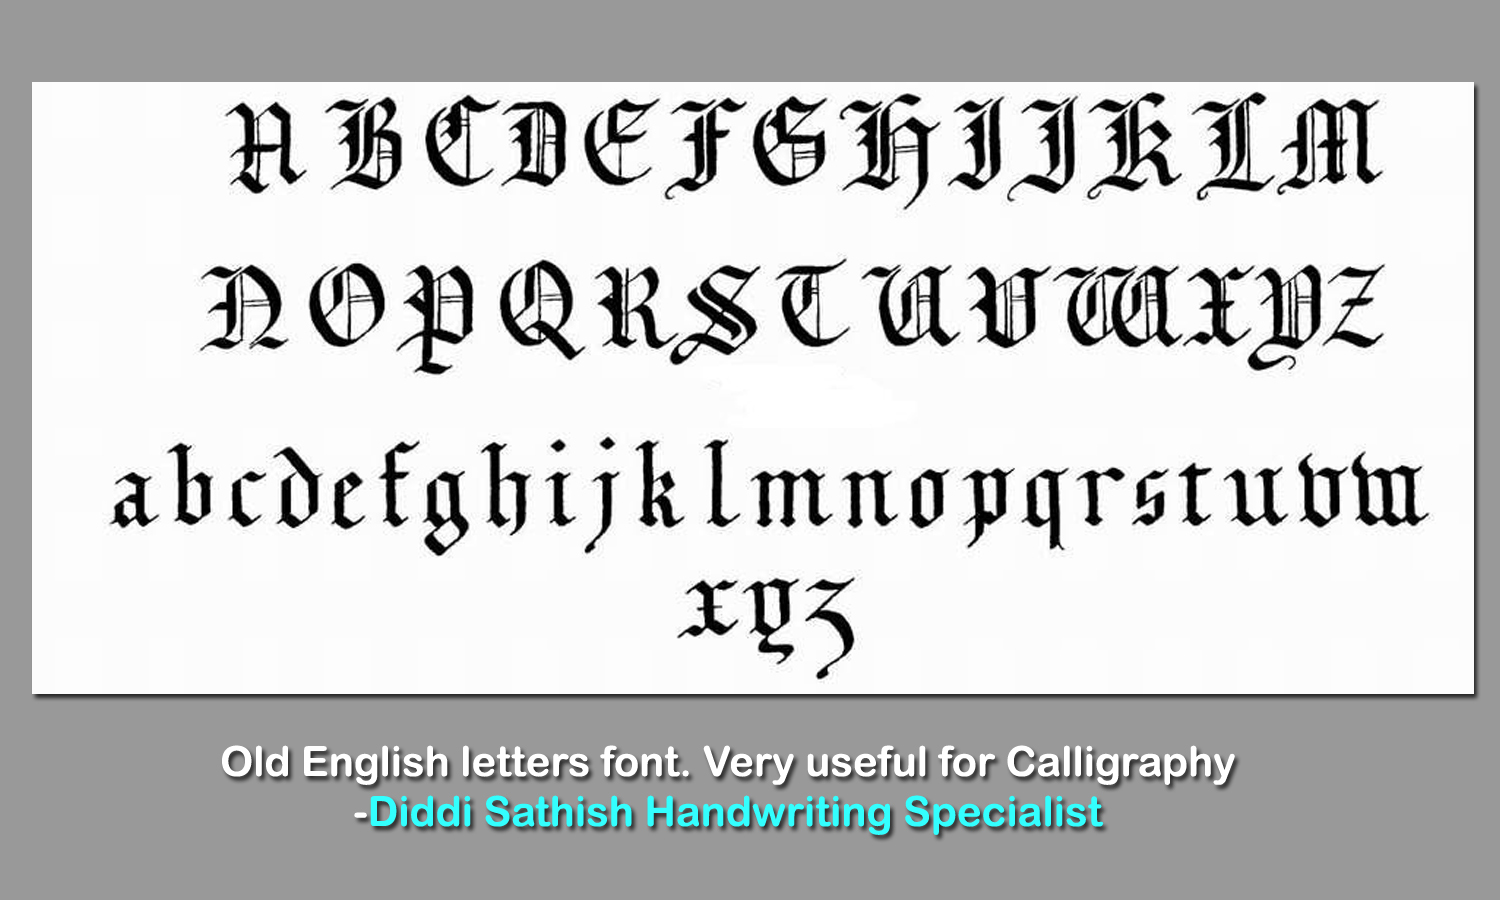 Old Calligraphy Font Free Handwriting Calligraphy Notes Handwritingtech